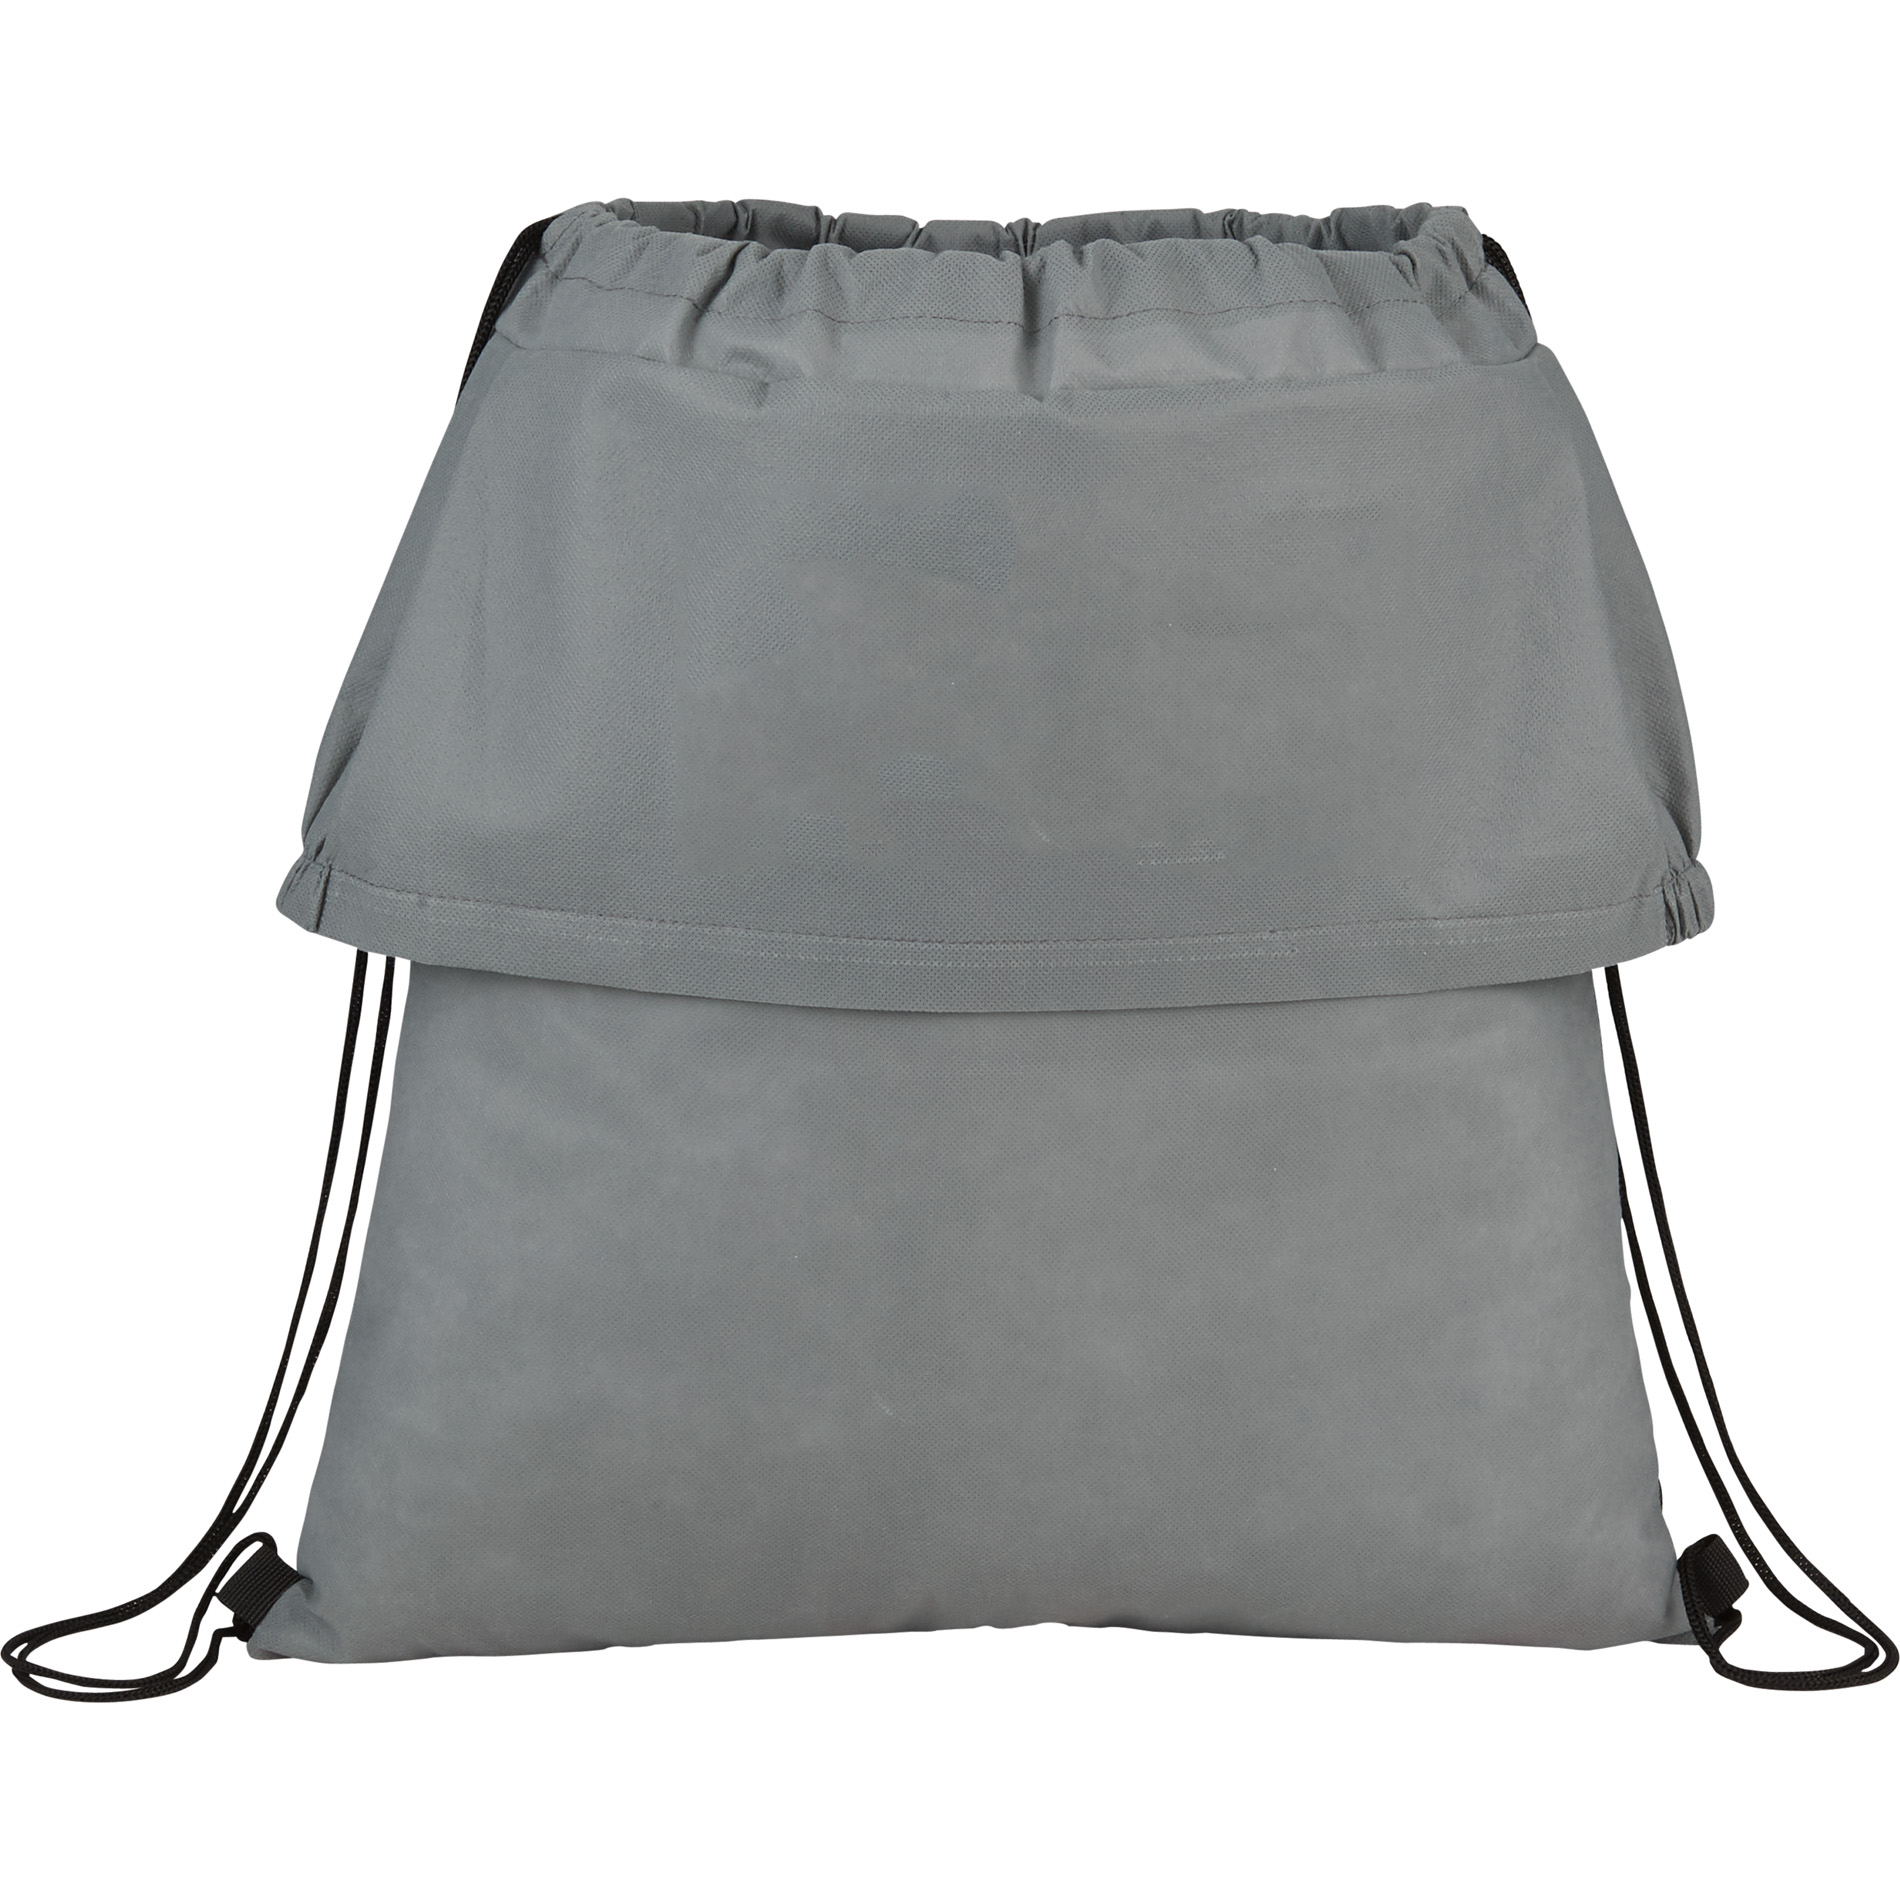 BackSac 3005-30 - Block Non-Woven Drawstring Bag